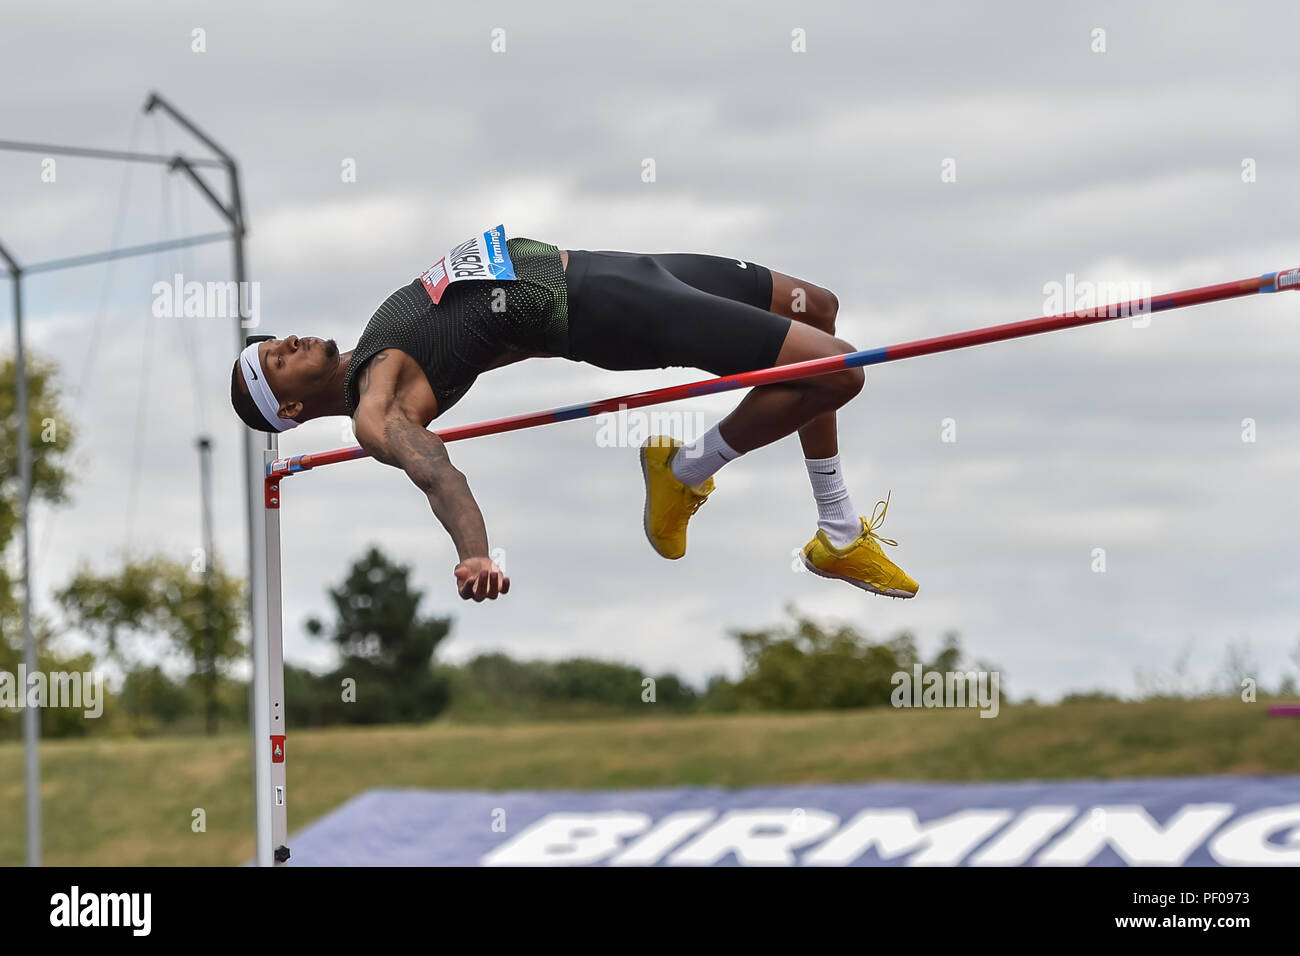 Birmingham, UK. 18th August 2018. Jeron Robinson (USA) in Men's High Jump during 2018 IAAF Diamond League - Birmingham at Alexander Stadium on Saturday, 18 August 2018. BIRMINGHAM, ENGLAND. Credit: Taka G Wu Credit: Taka Wu/Alamy Live News - Stock Image